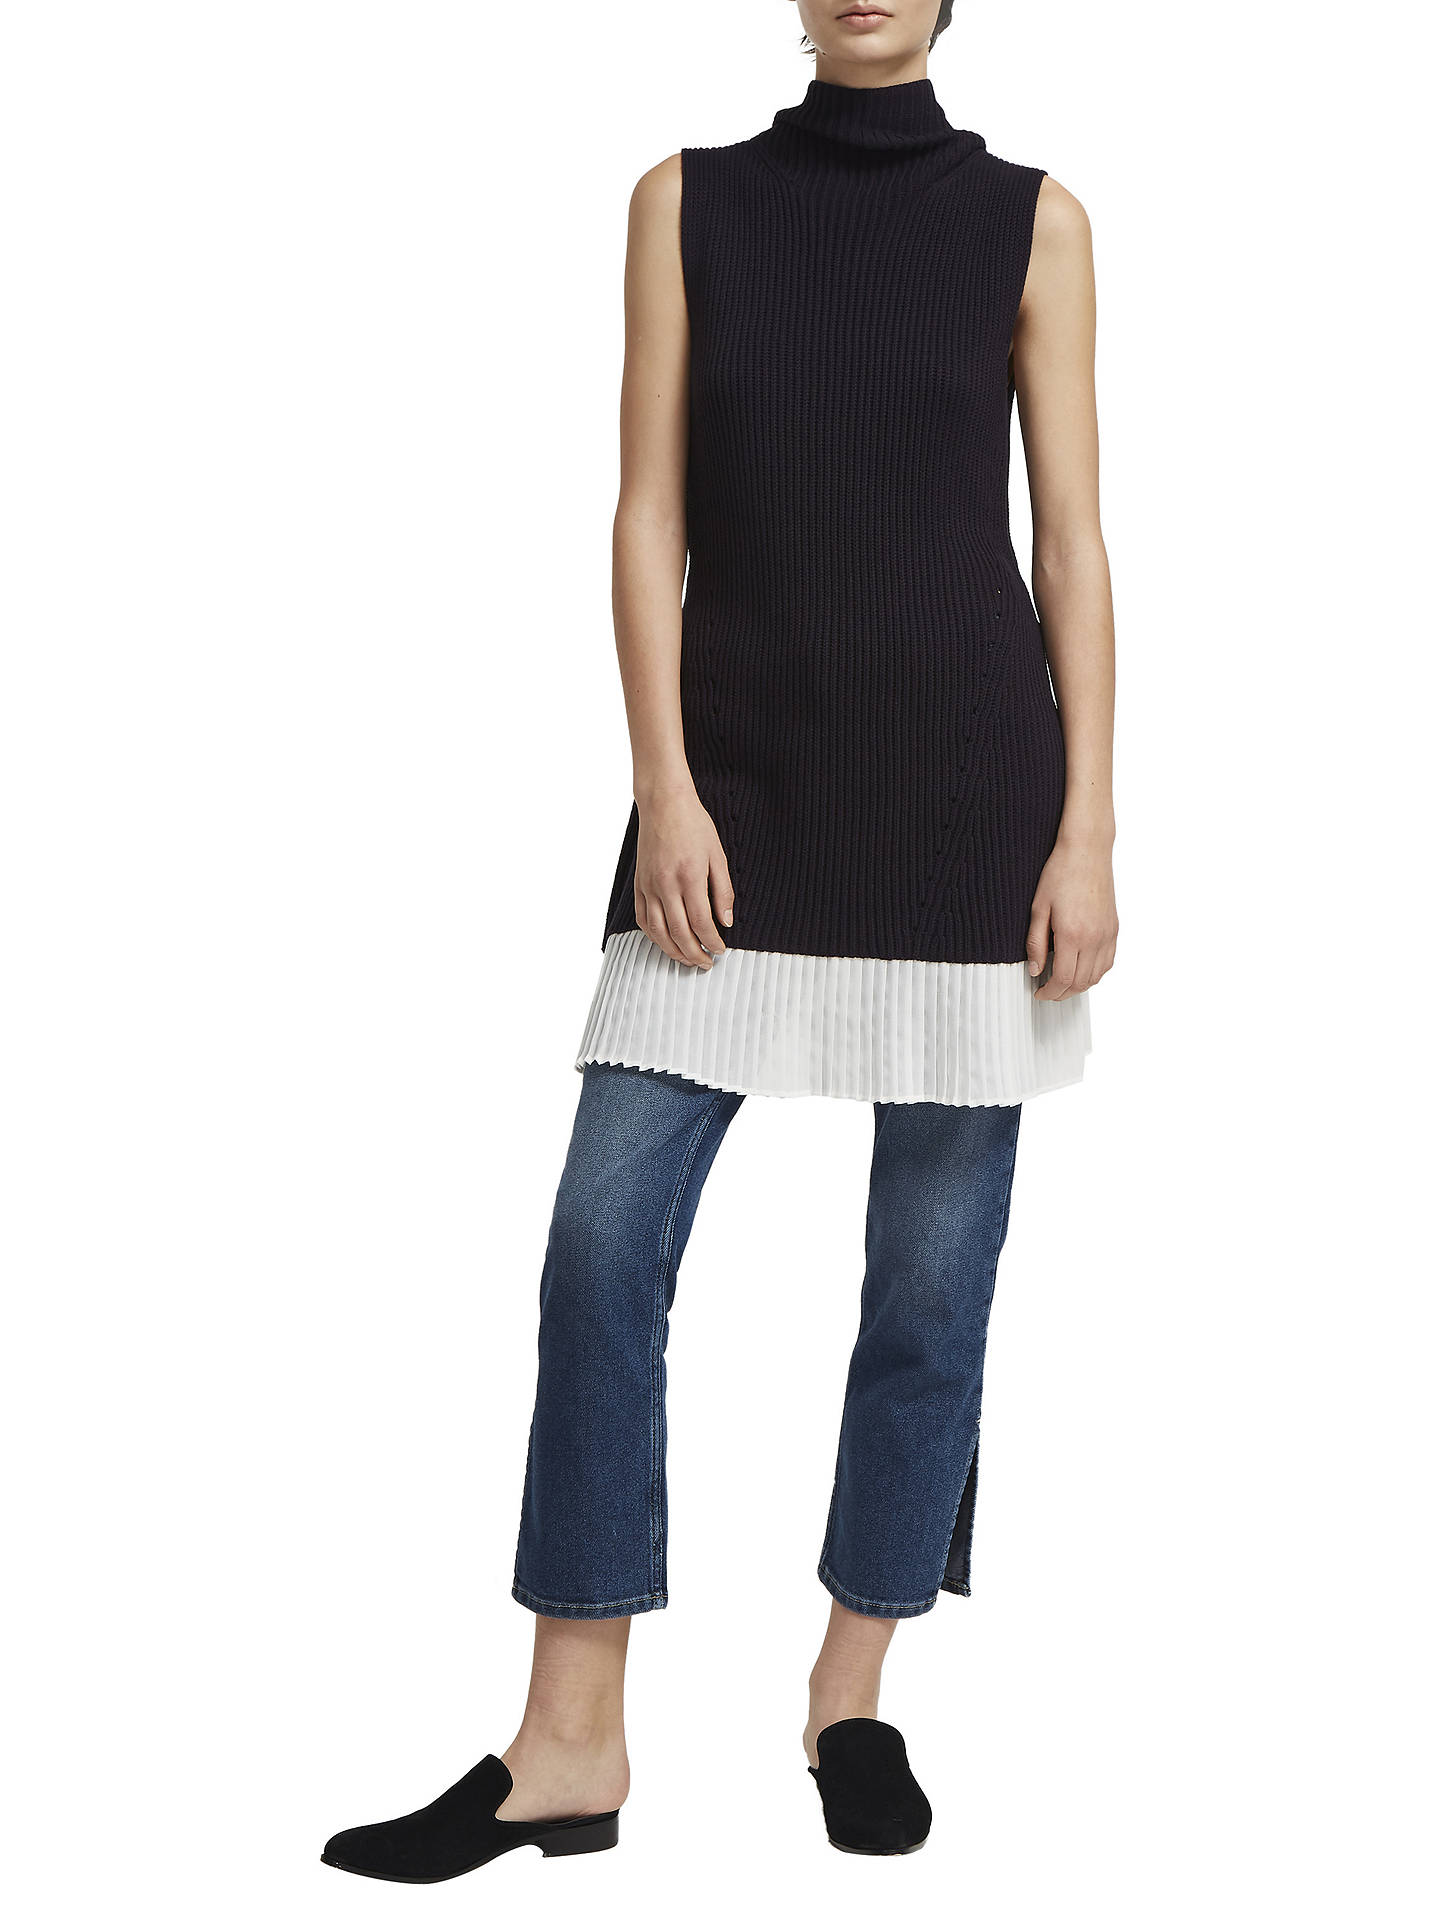 BuyFrench Connection High Neck Sleeveless Jumper Dress, Utility Blue/Summer White, XS Online at johnlewis.com